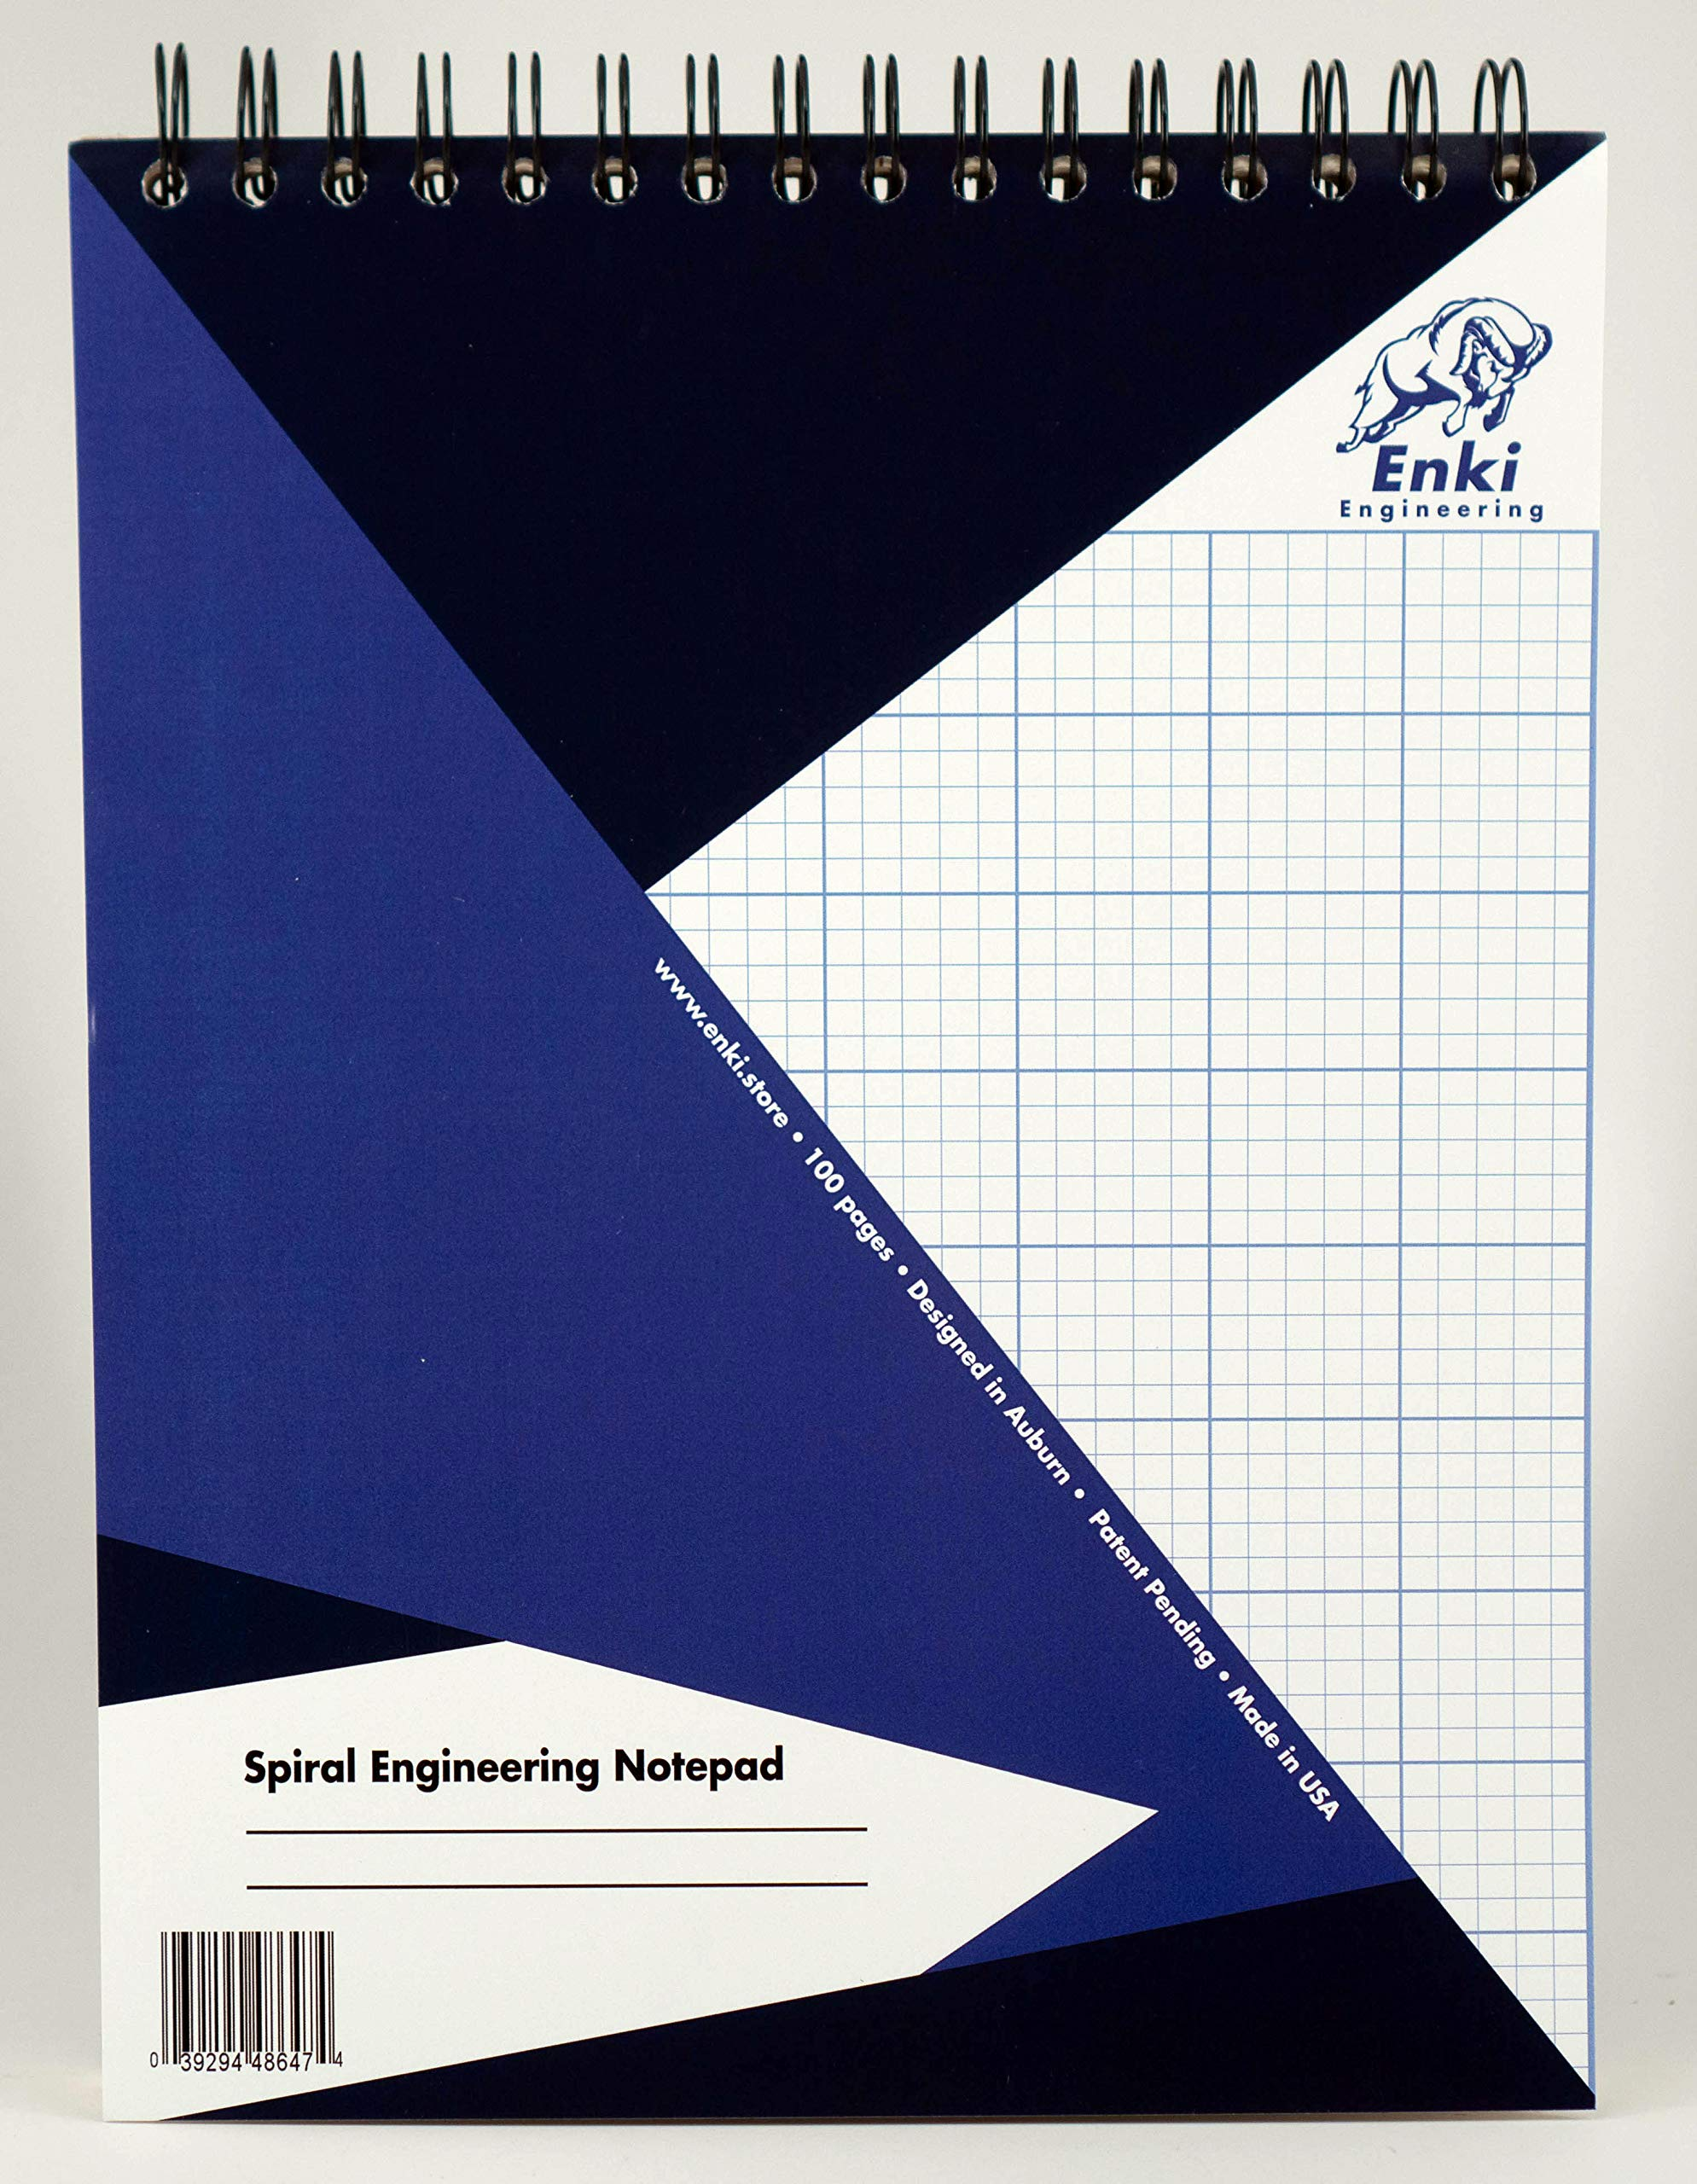 Engineering Paper 200 sheet - Spiral Notepad (Blue Cover)